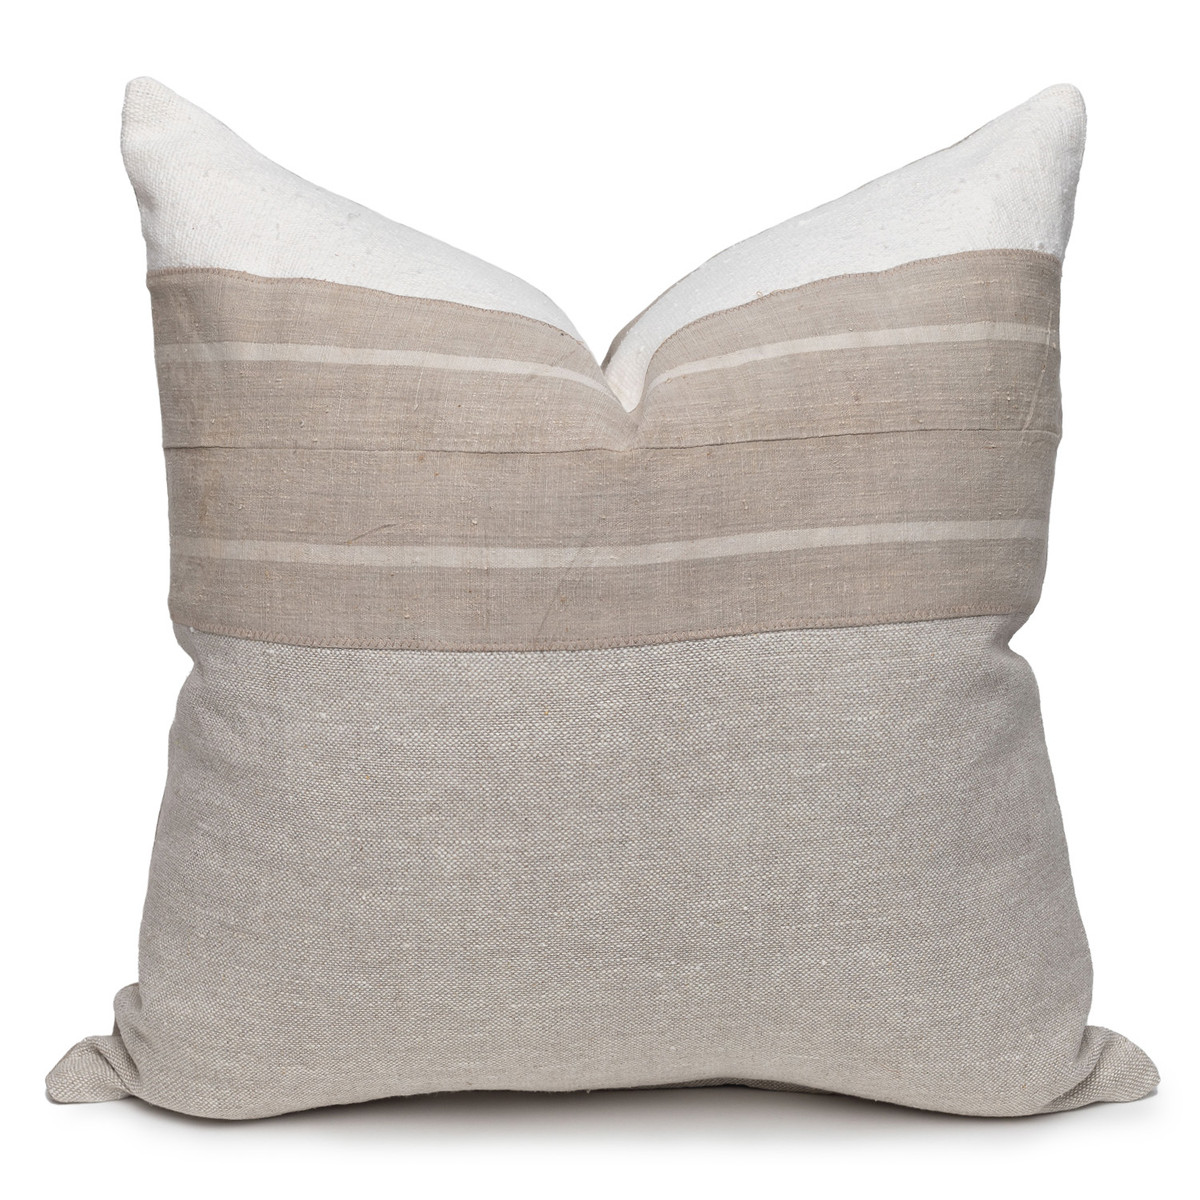 Mila Luxe Vintage Pillow with African Aso Oke Textiles, Linen in Natural & White Mud Cloth-22- Front VIEW